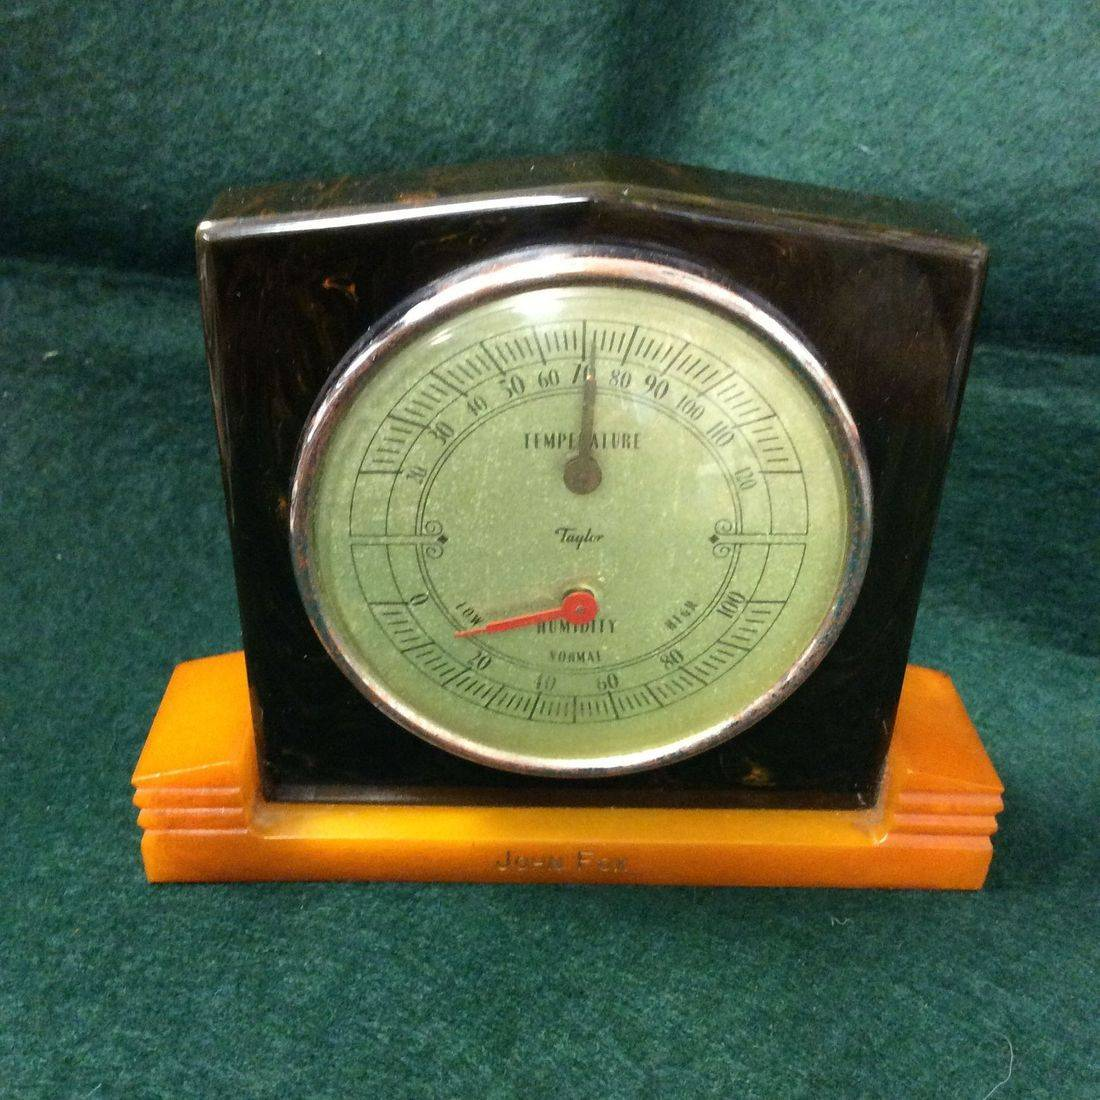 1930's/40's Taylor, Bakelite and Catalin, Desktop Weather Station   $135.00